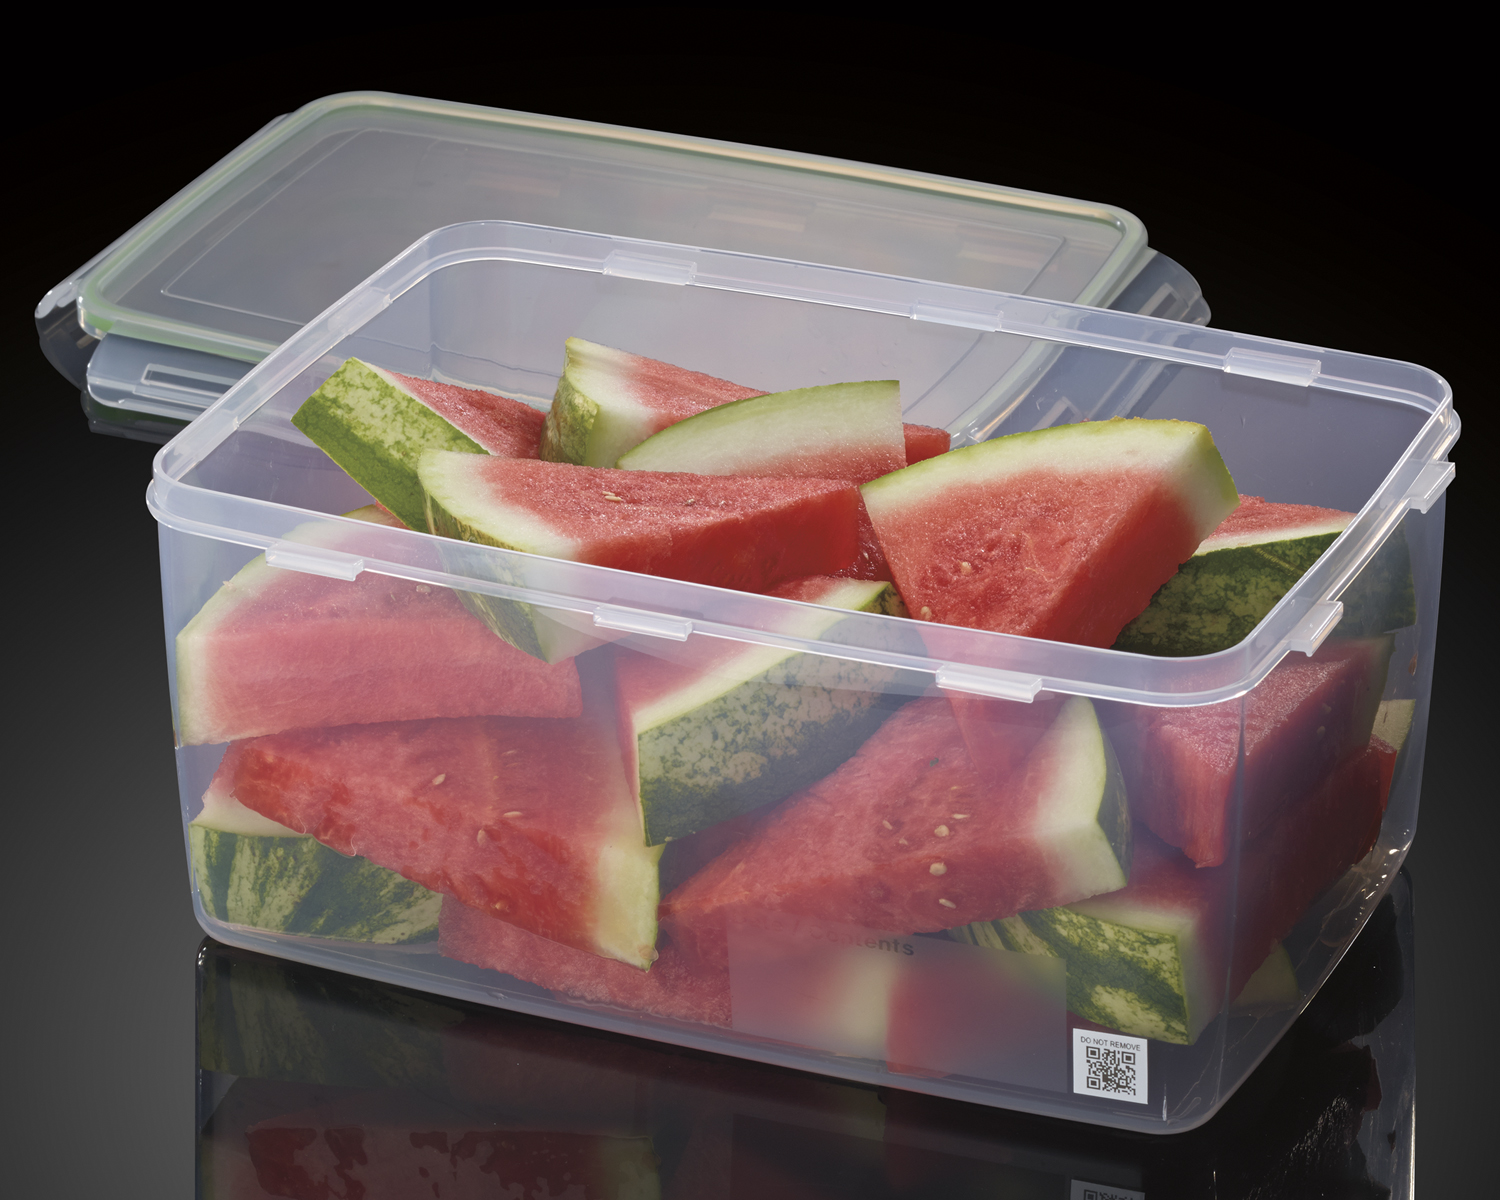 The Cuisinart SmarTrack food storage containers will send you an alert warning you when food will go bad.